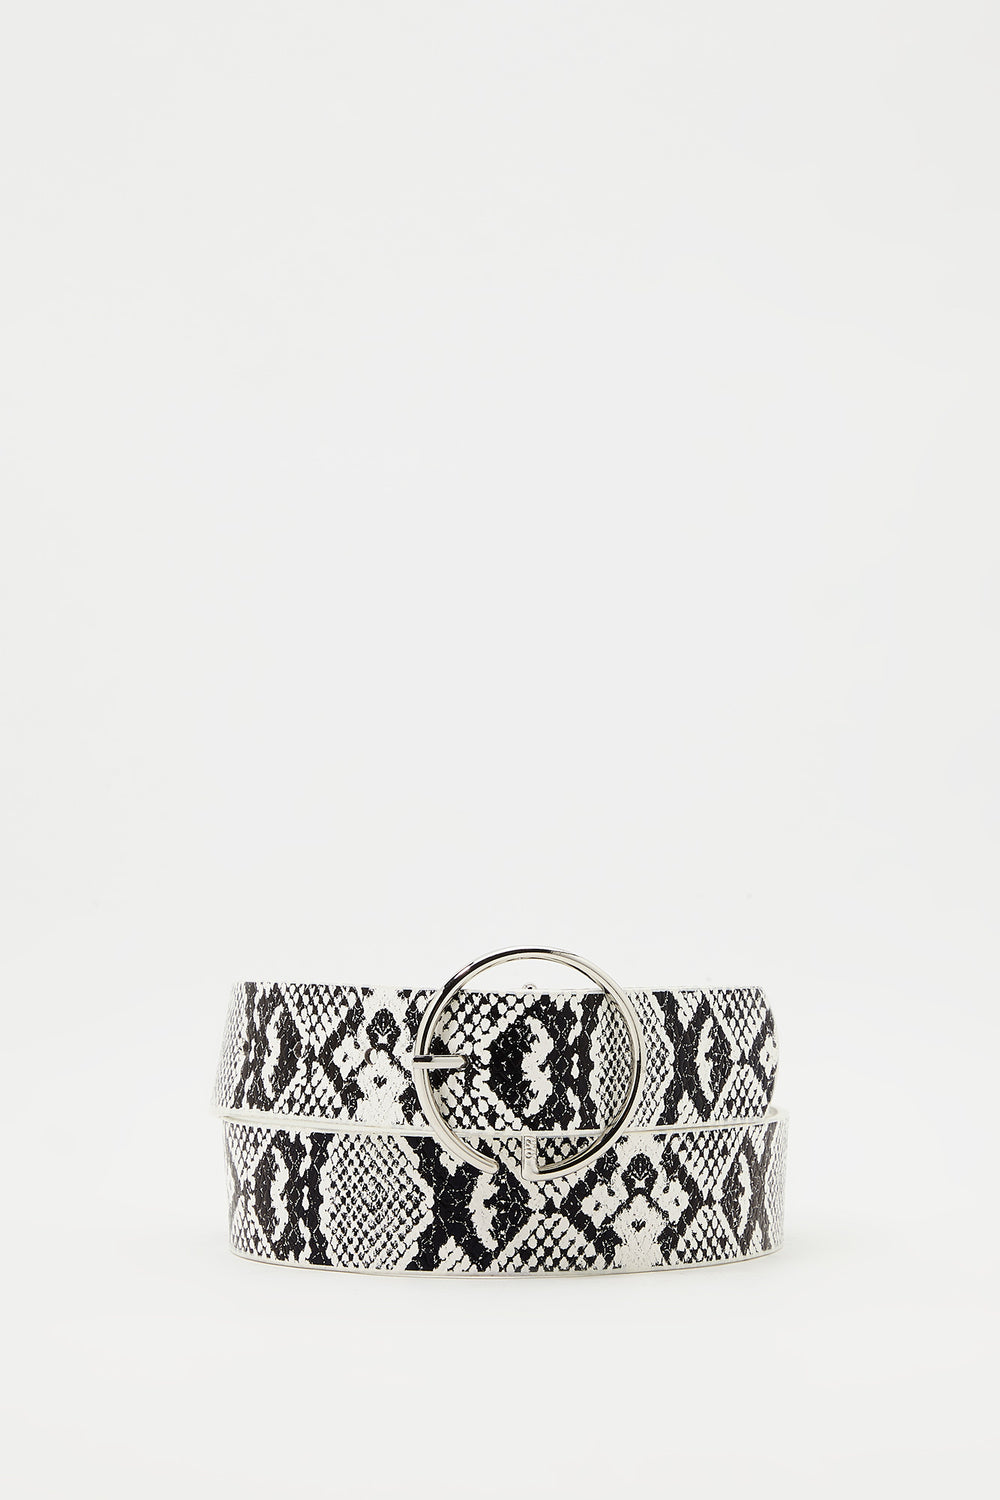 Circle Belt Black with White